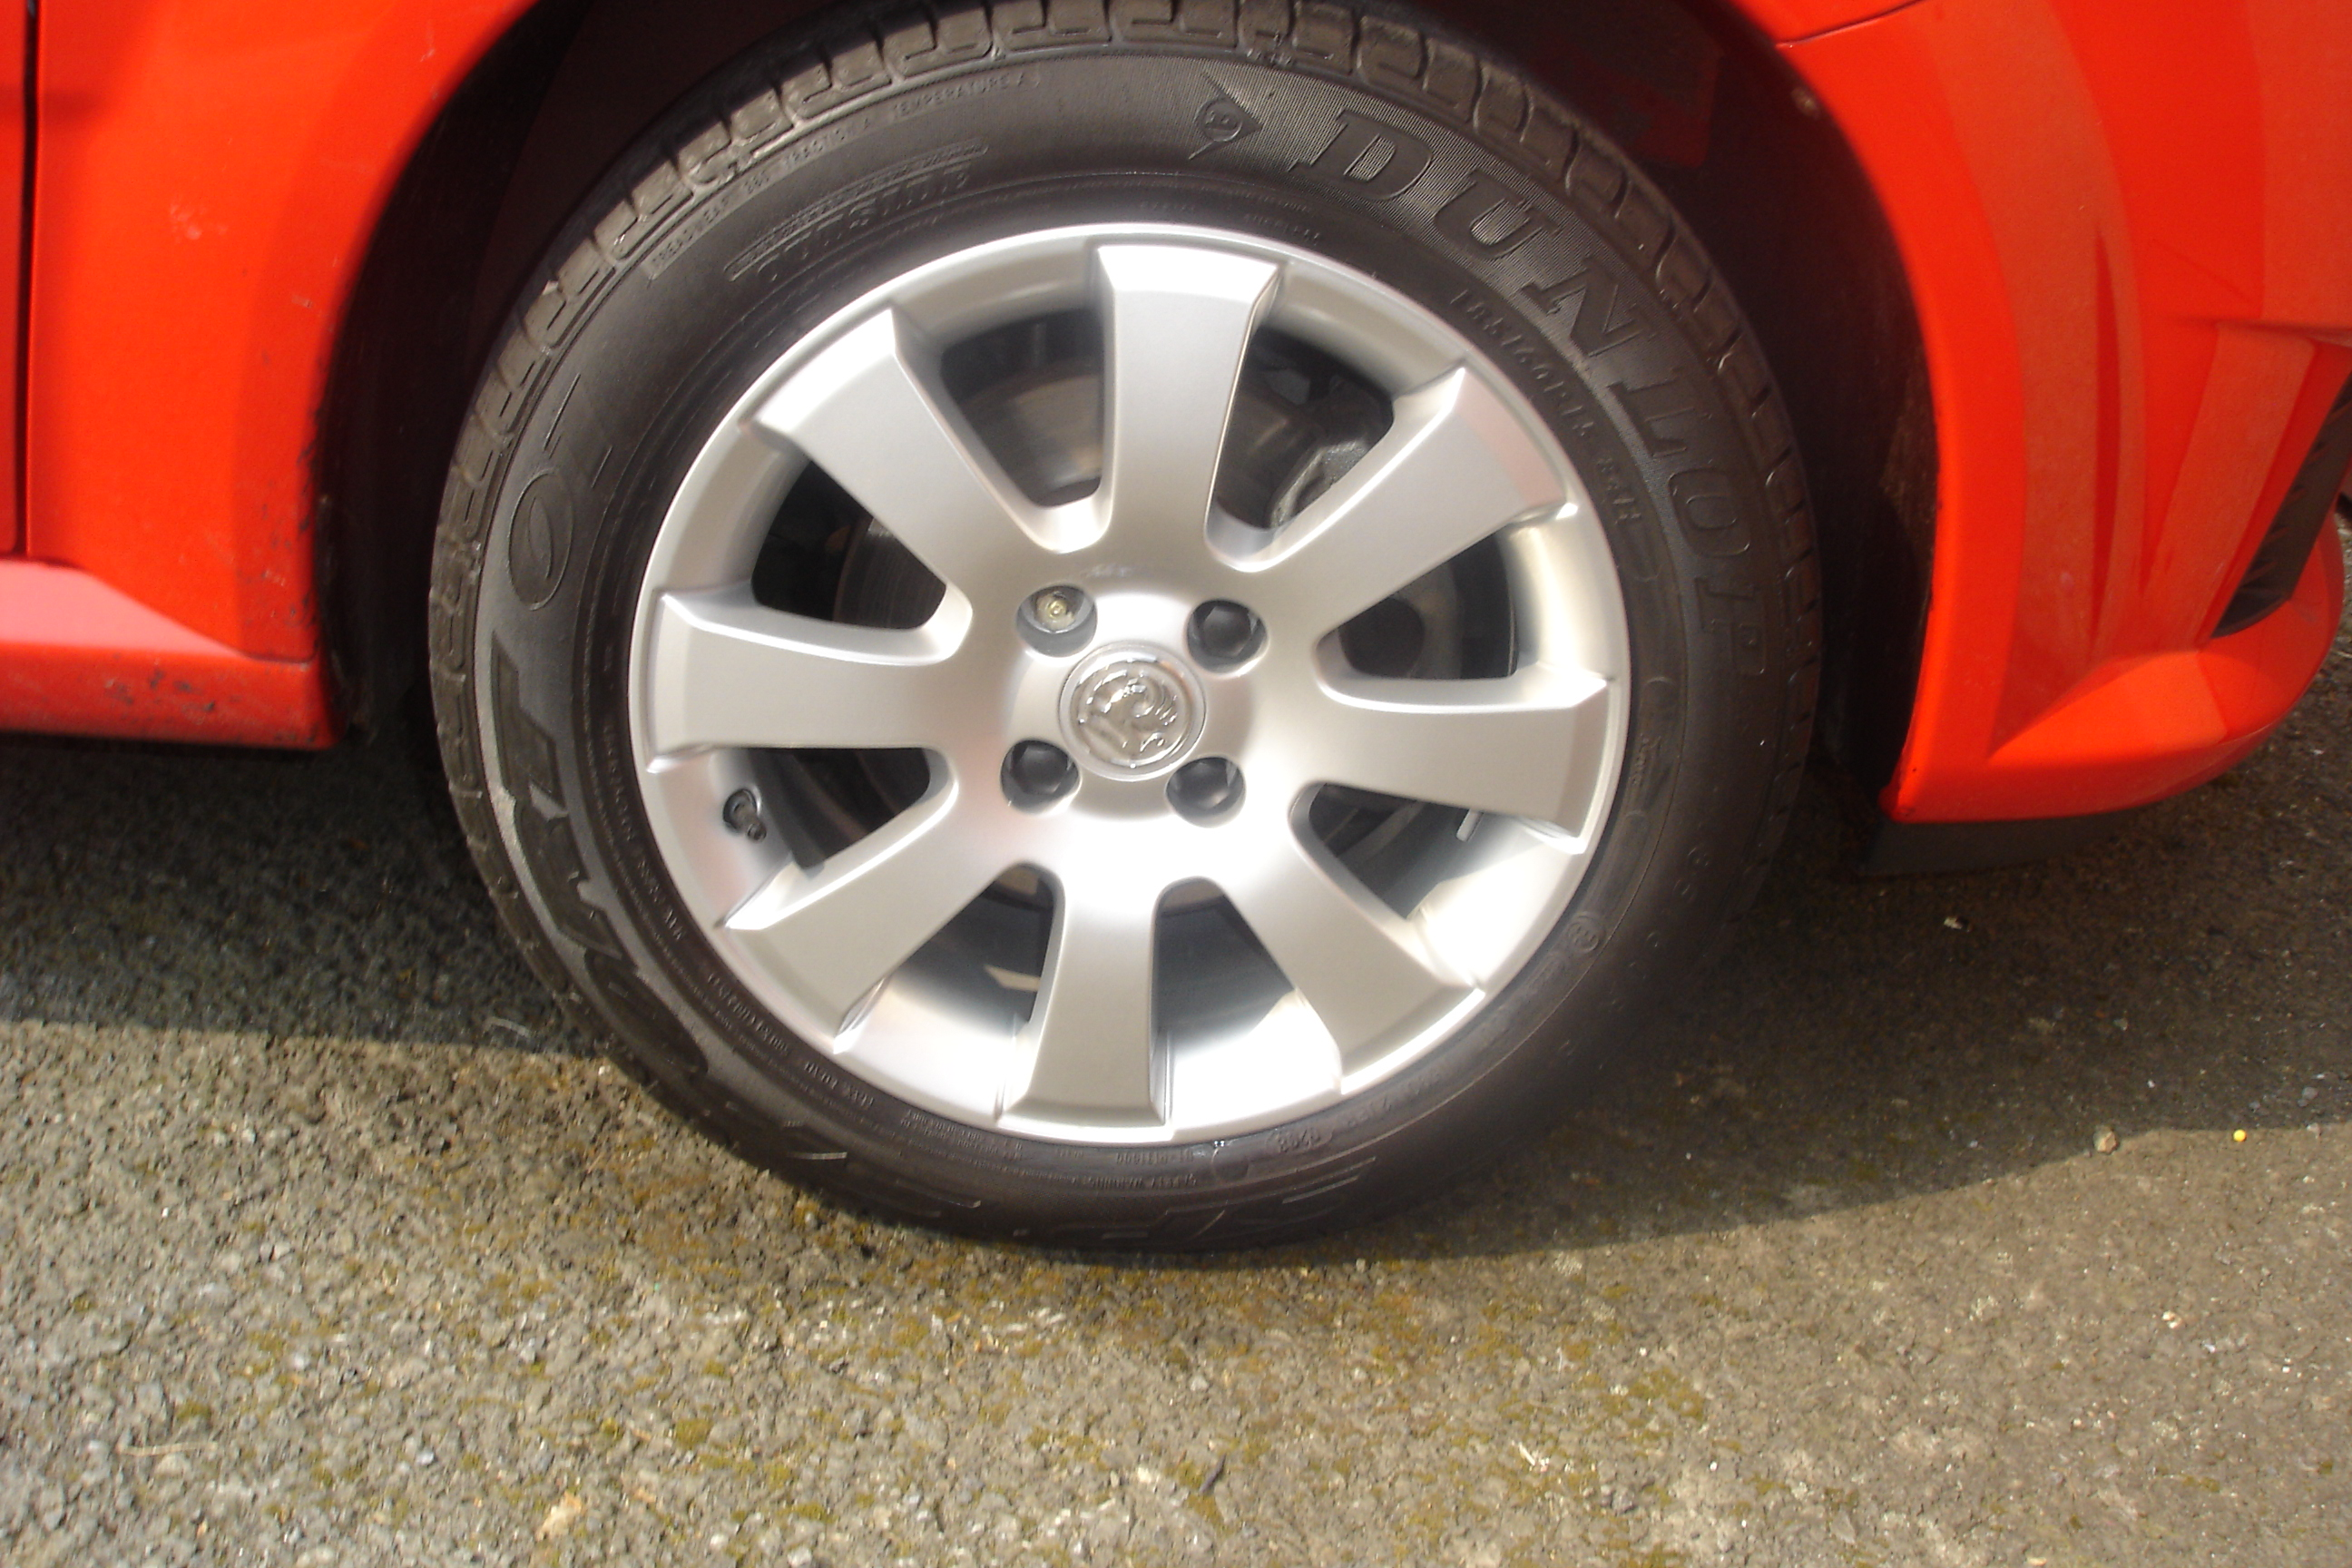 repair-complete-and-wheel-back-on-car